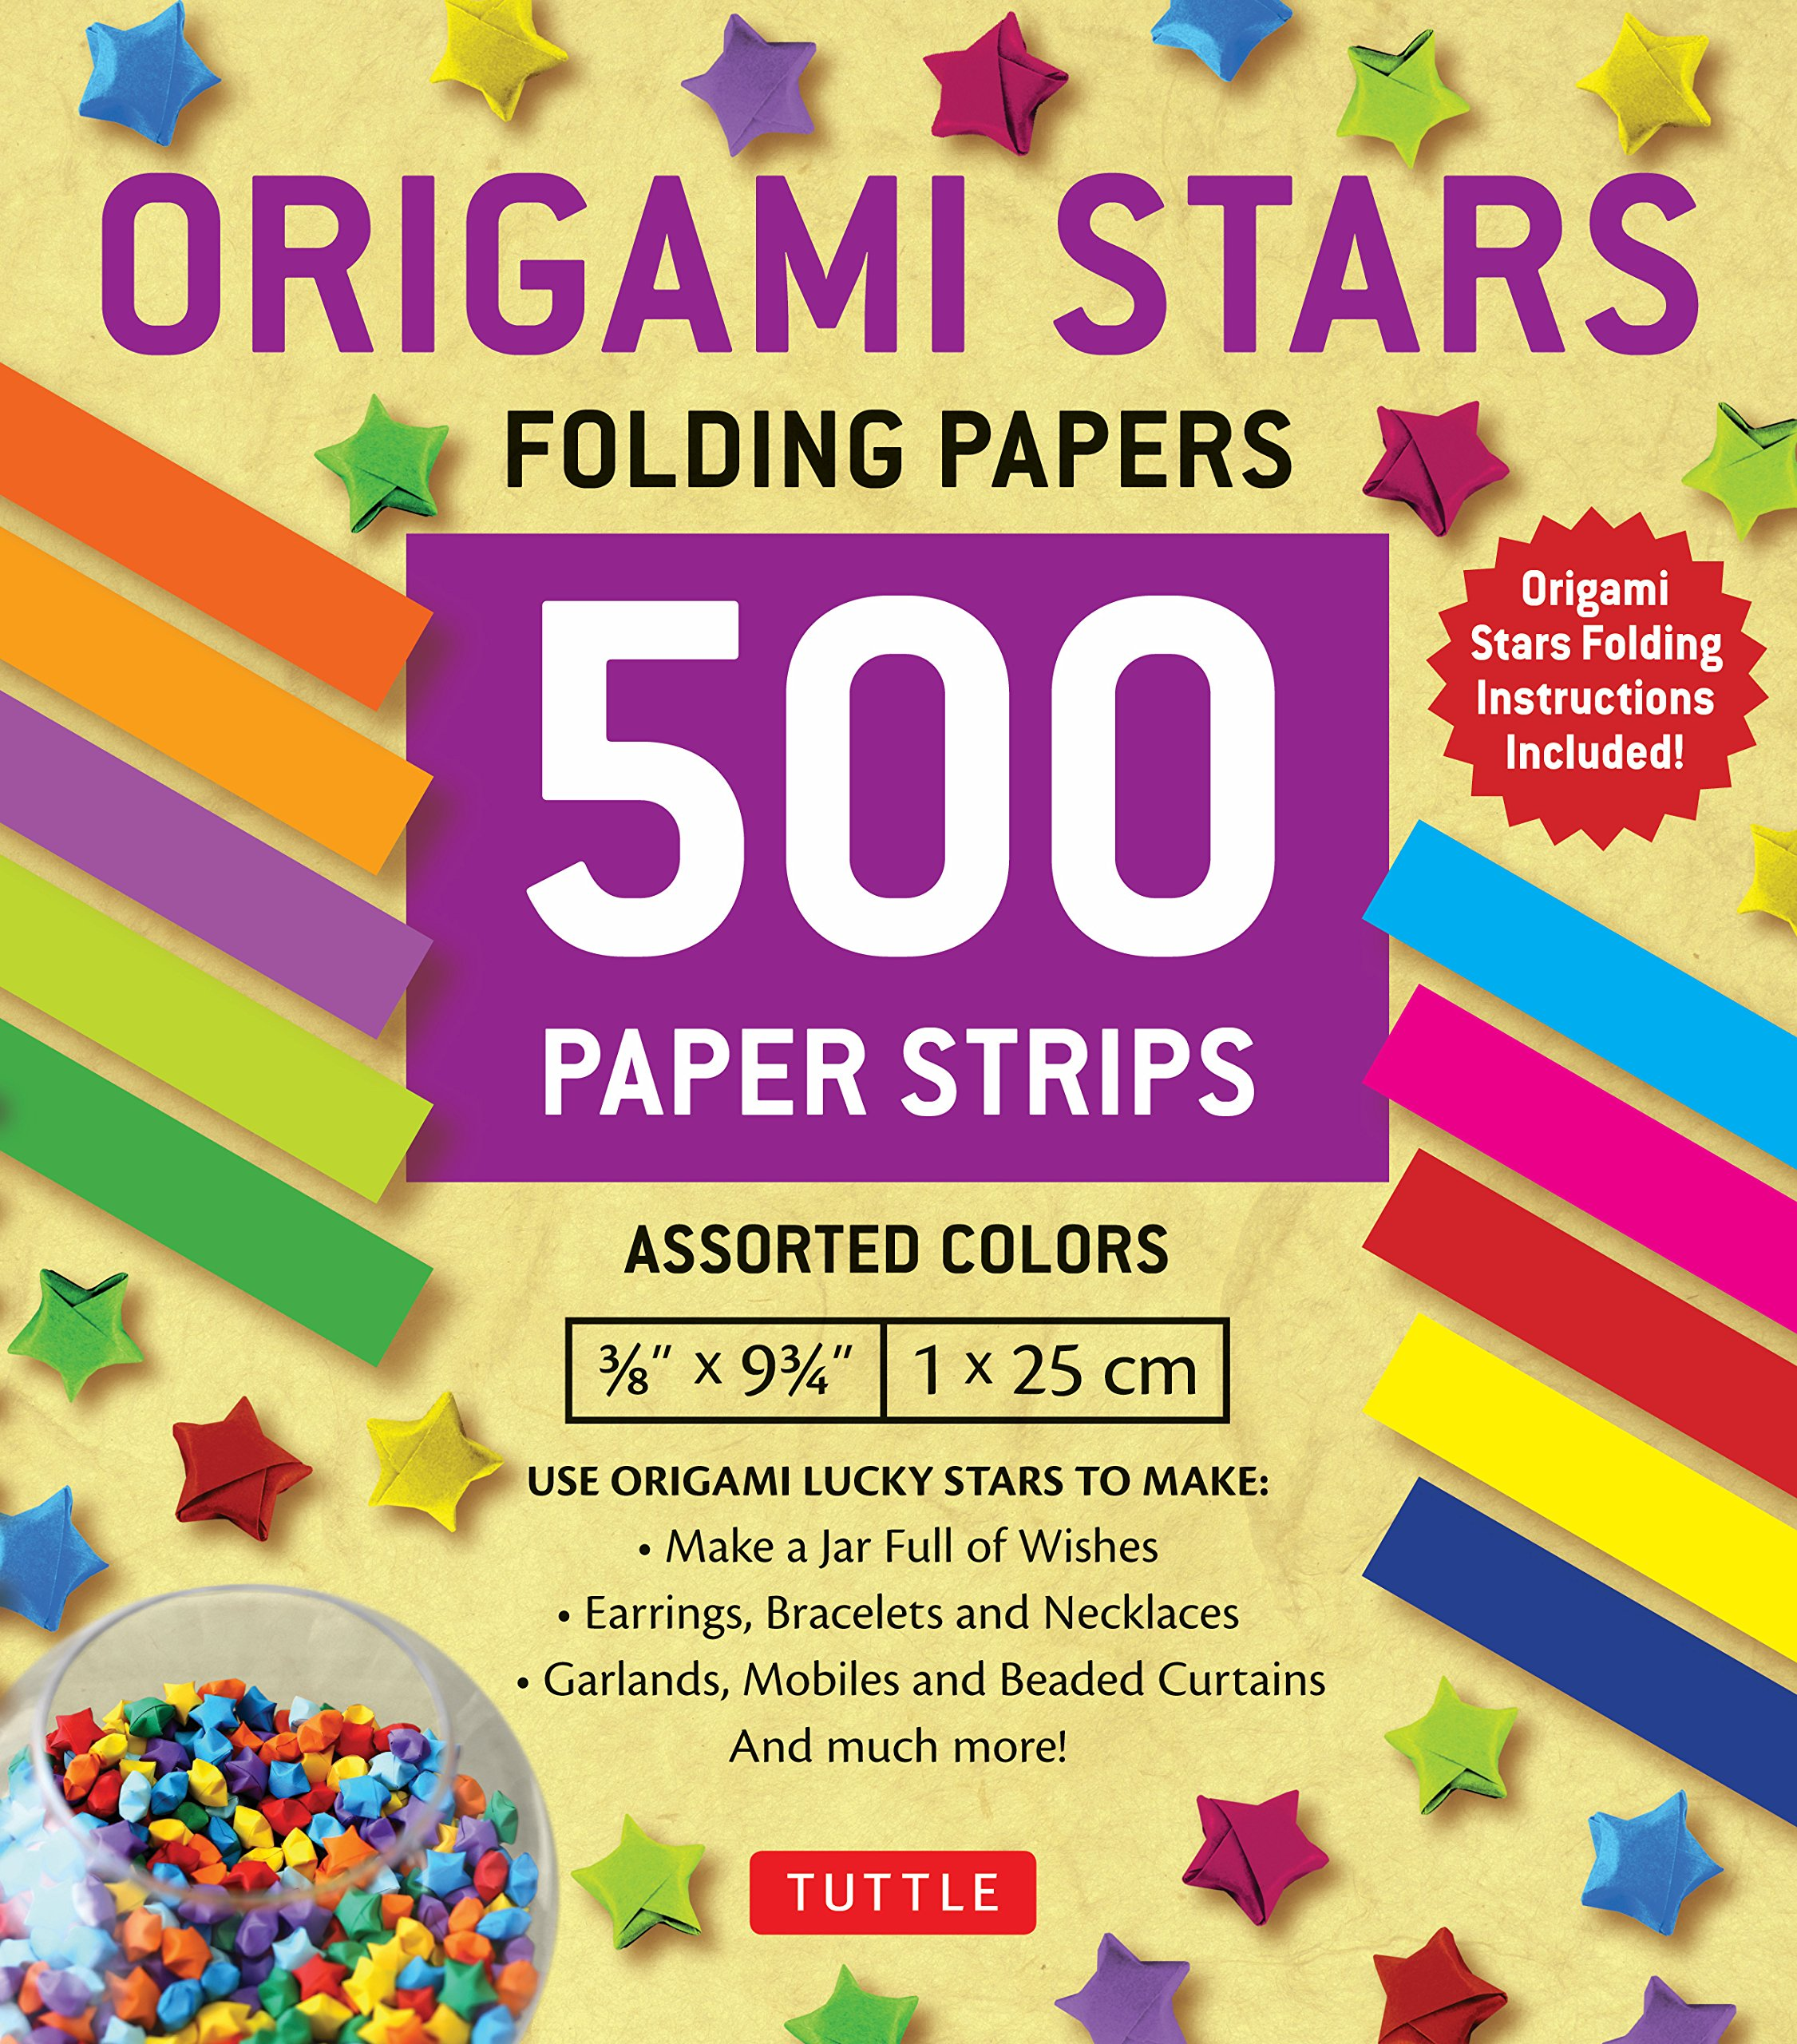 DIY Crafts Tutorials - Easy Paper Stars : 9 Steps (with Pictures ... | 2560x2251